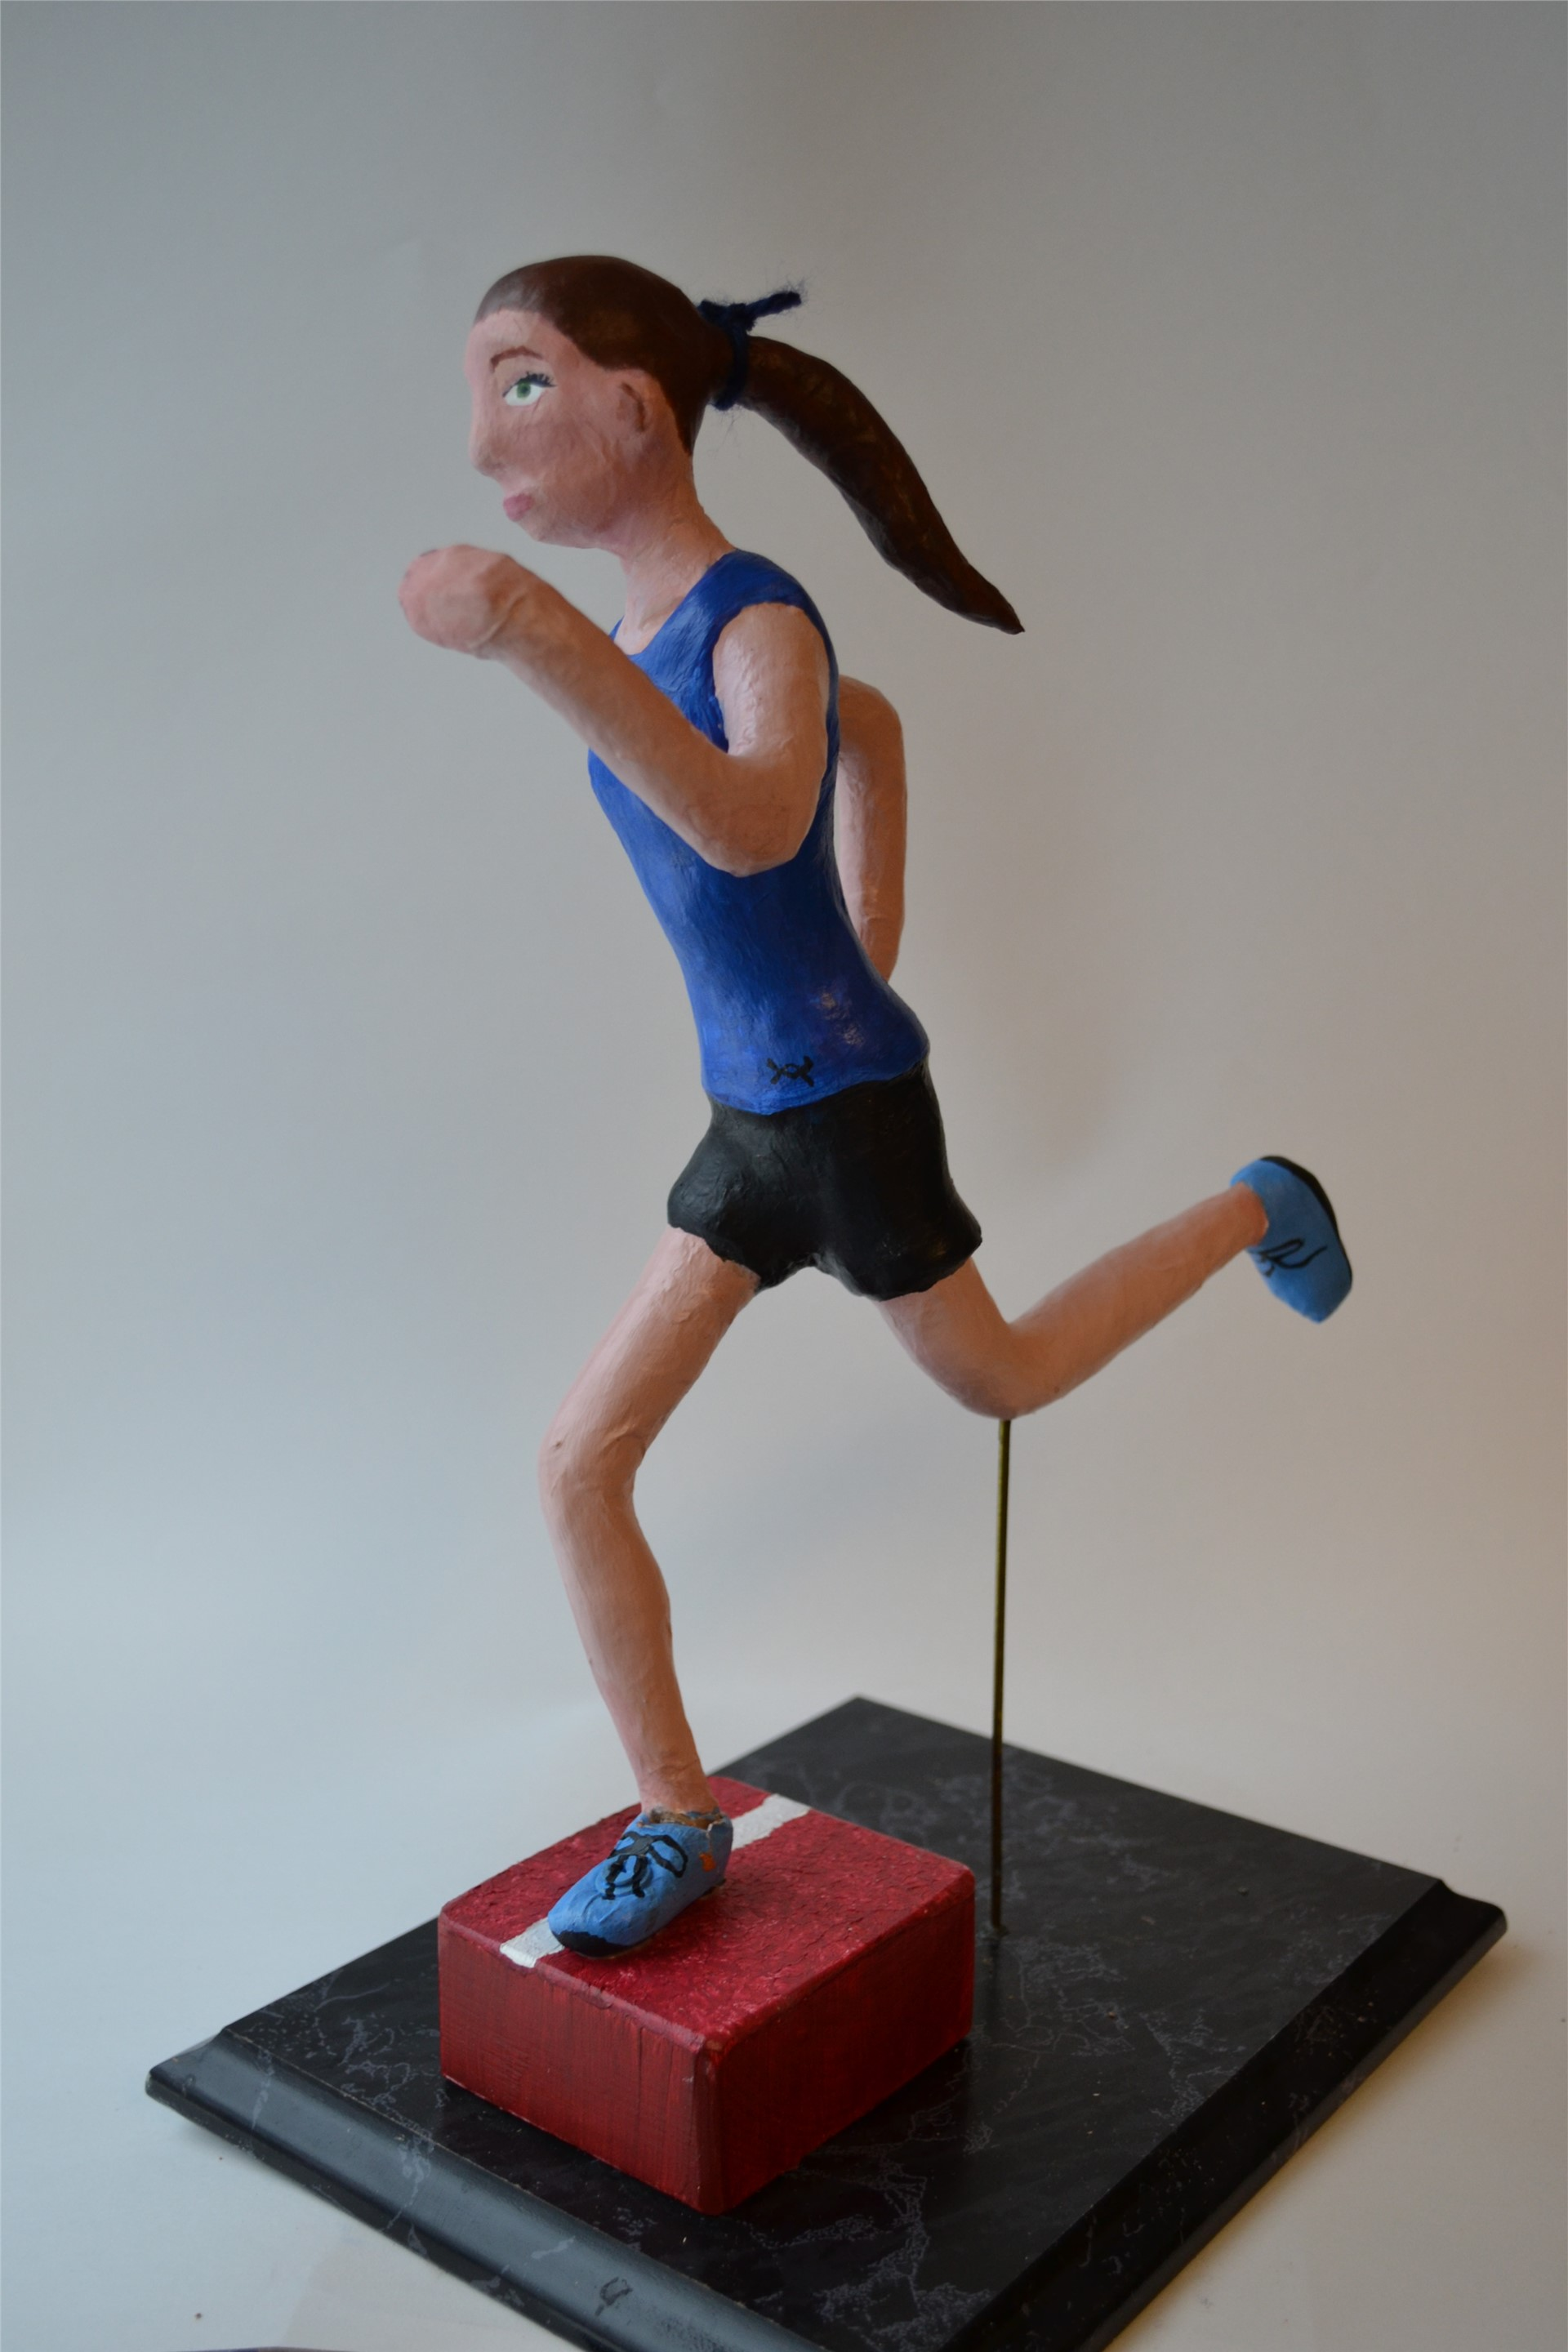 VICTORIA PROUTY, Runner, mixed media, 2015